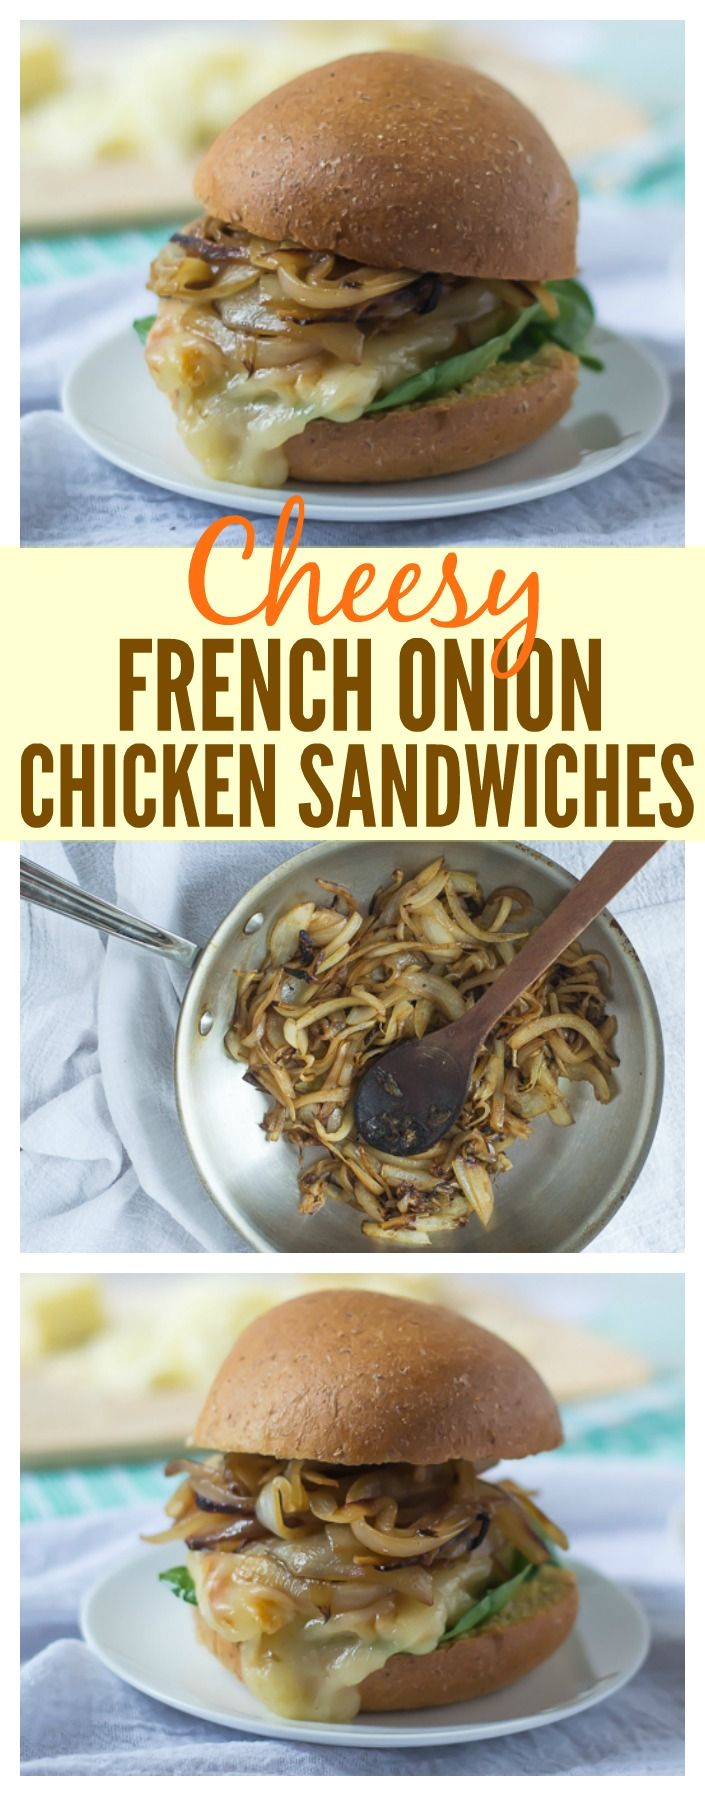 Cheesy French Onion Chicken Sandwiches. The savory caramelized onion flavor of French Onions Soup in a grilled chicken sandwich! Perfect for picnics, camping, and weeknight dinner too!